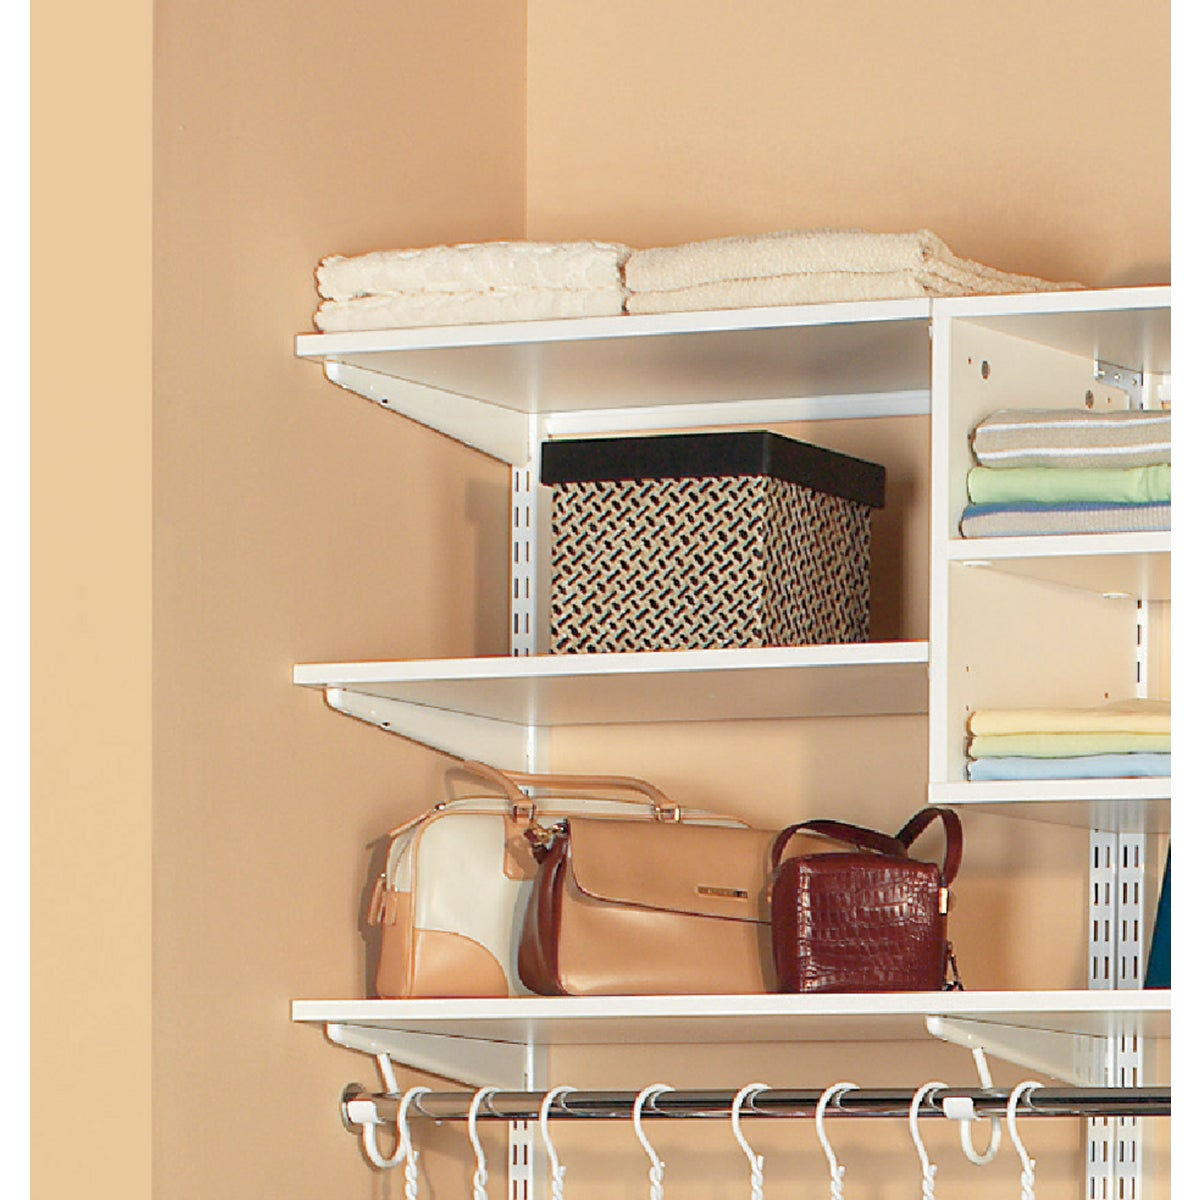 6' WHITE MELAMINE SHELF